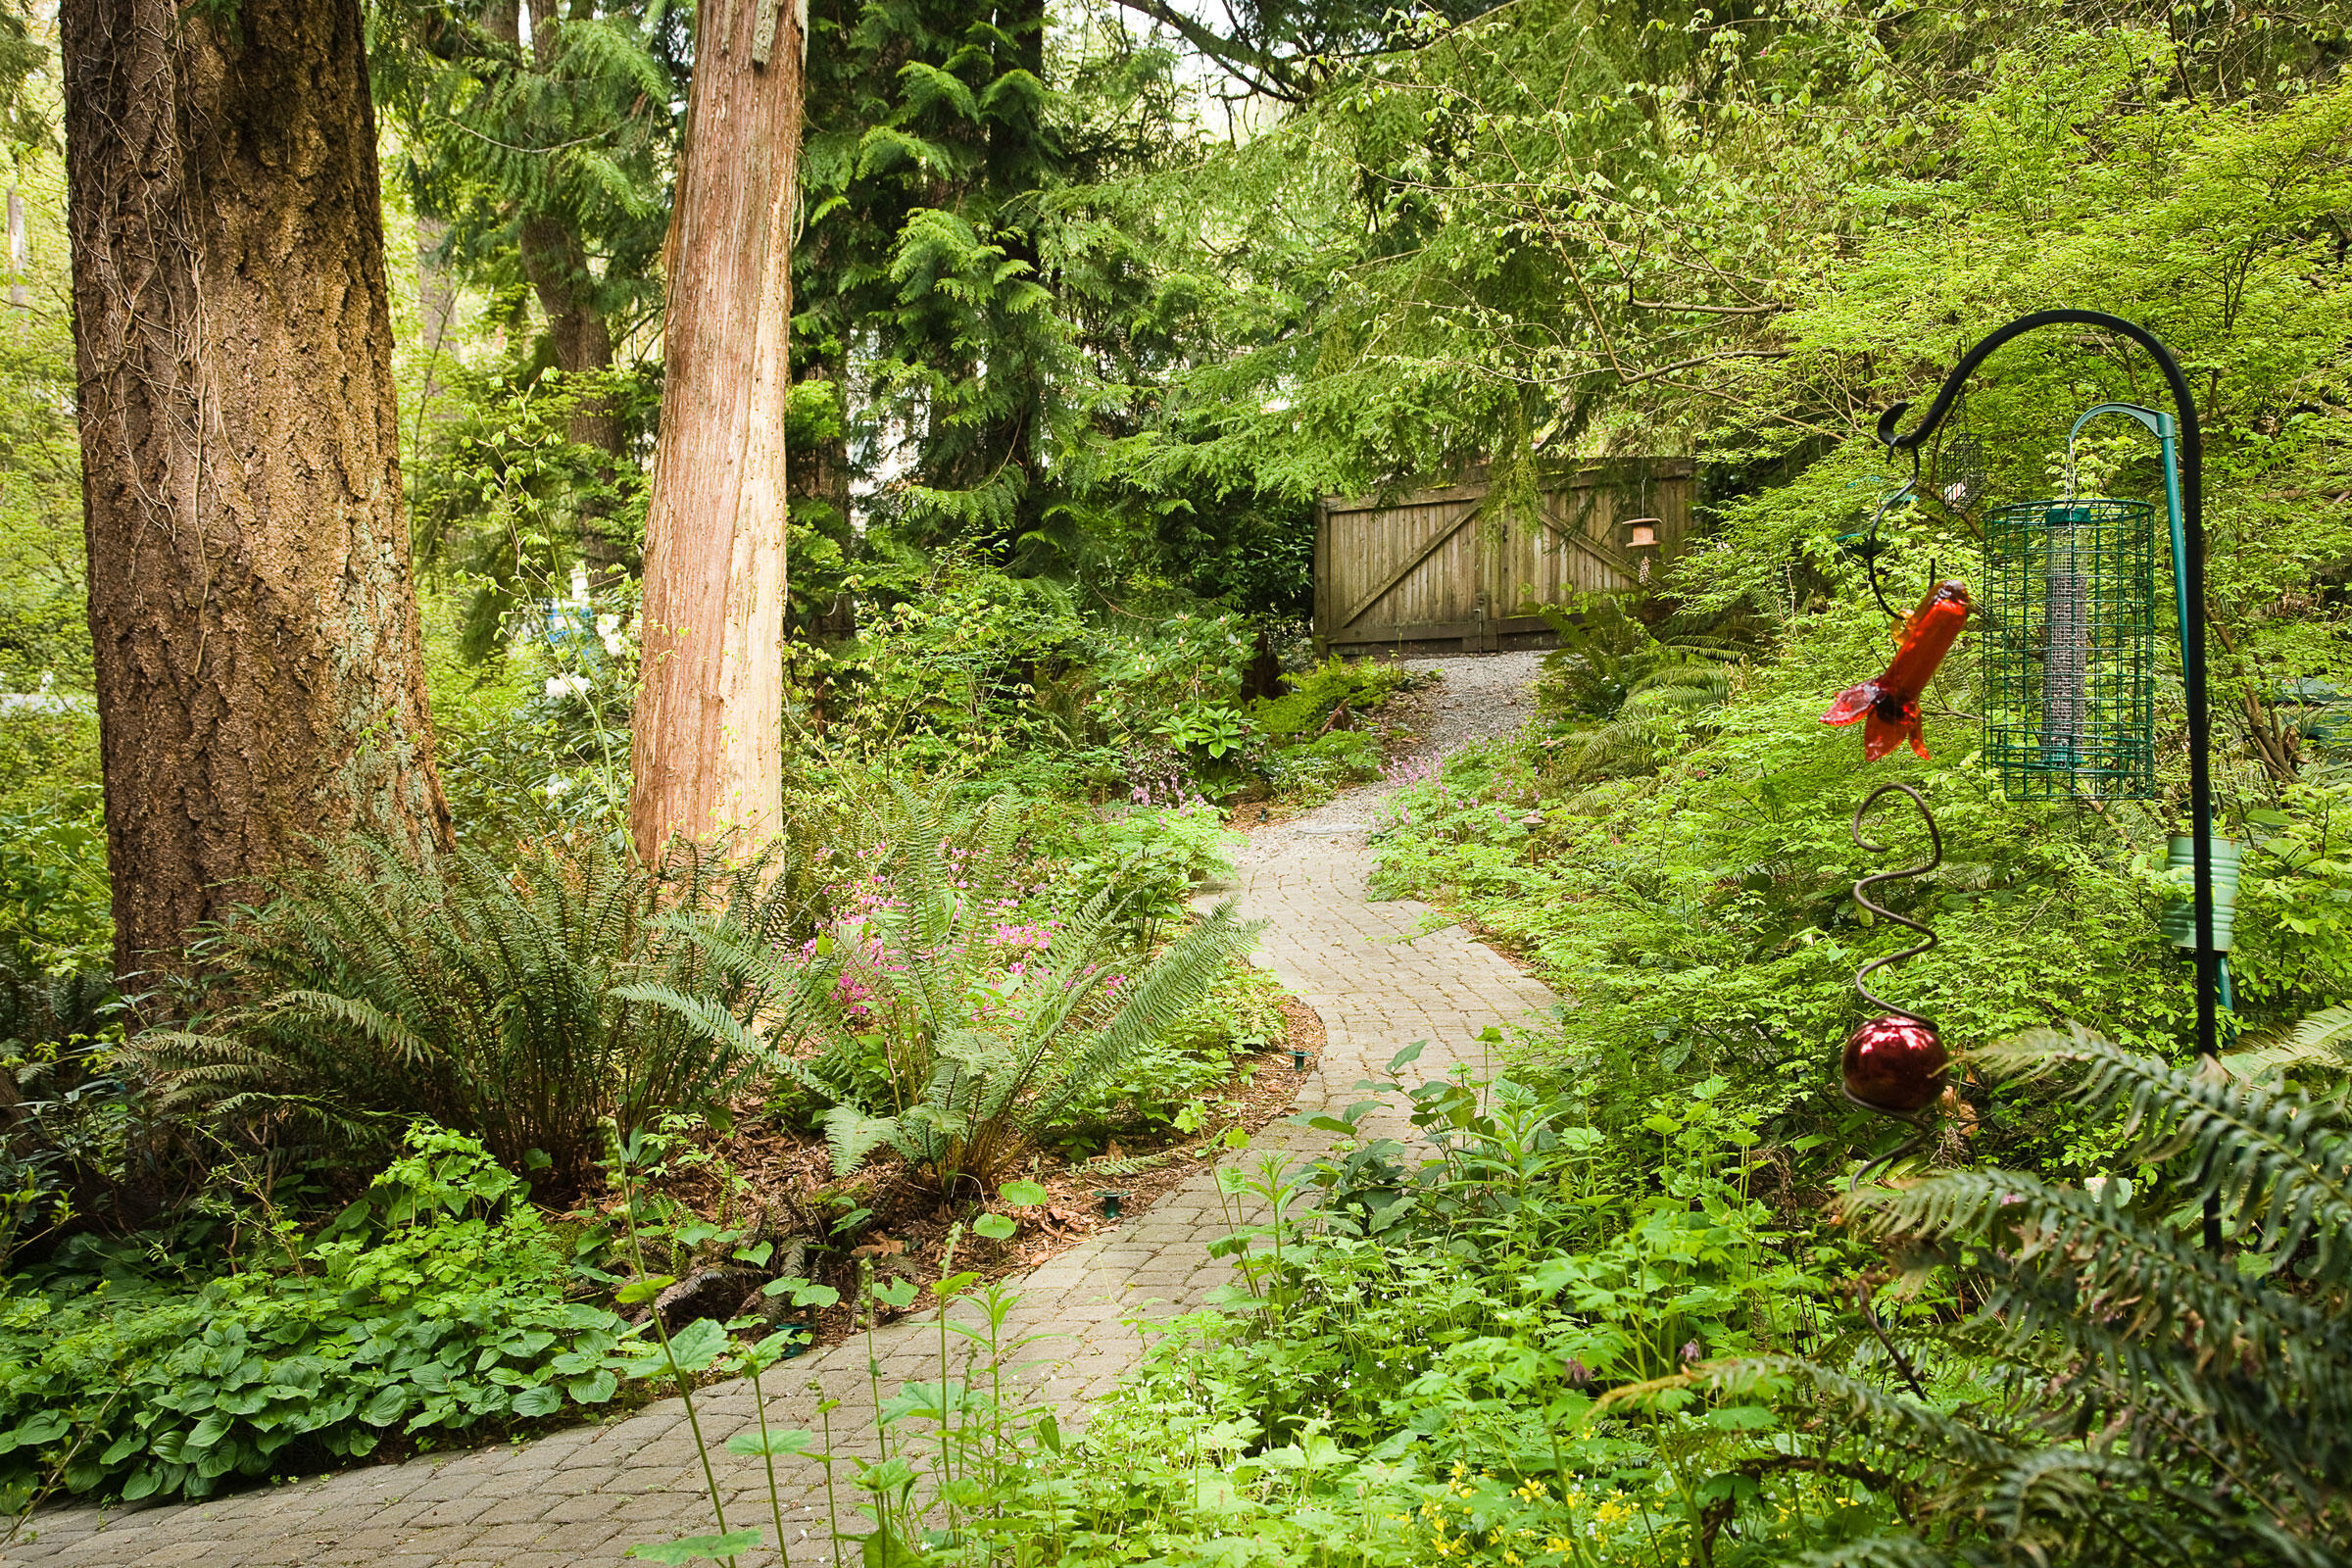 Bird feeders are surrounded by a variety of native plants, including sword ferns, wild ginger, red huckleberries, and Douglas-fir and western red cedar trees on Washington's Mercer Island. Mark Turner